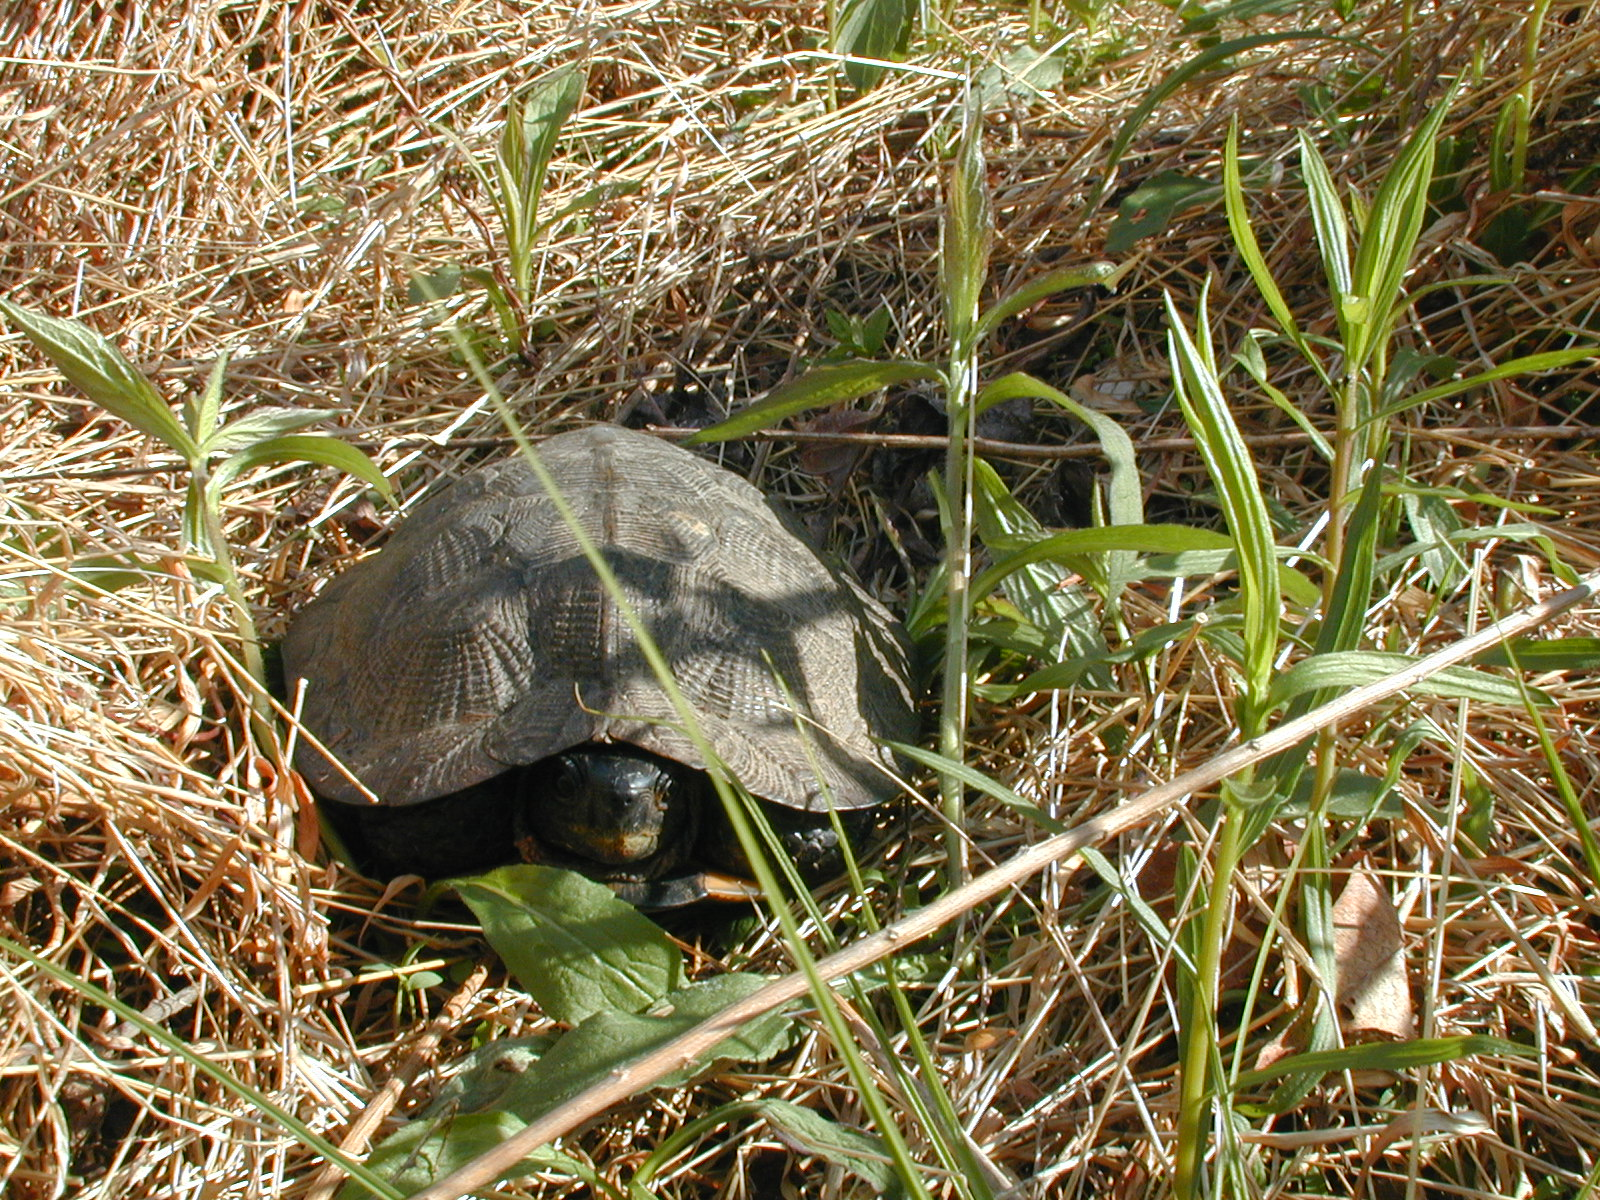 The turtle out in the sun for a picture